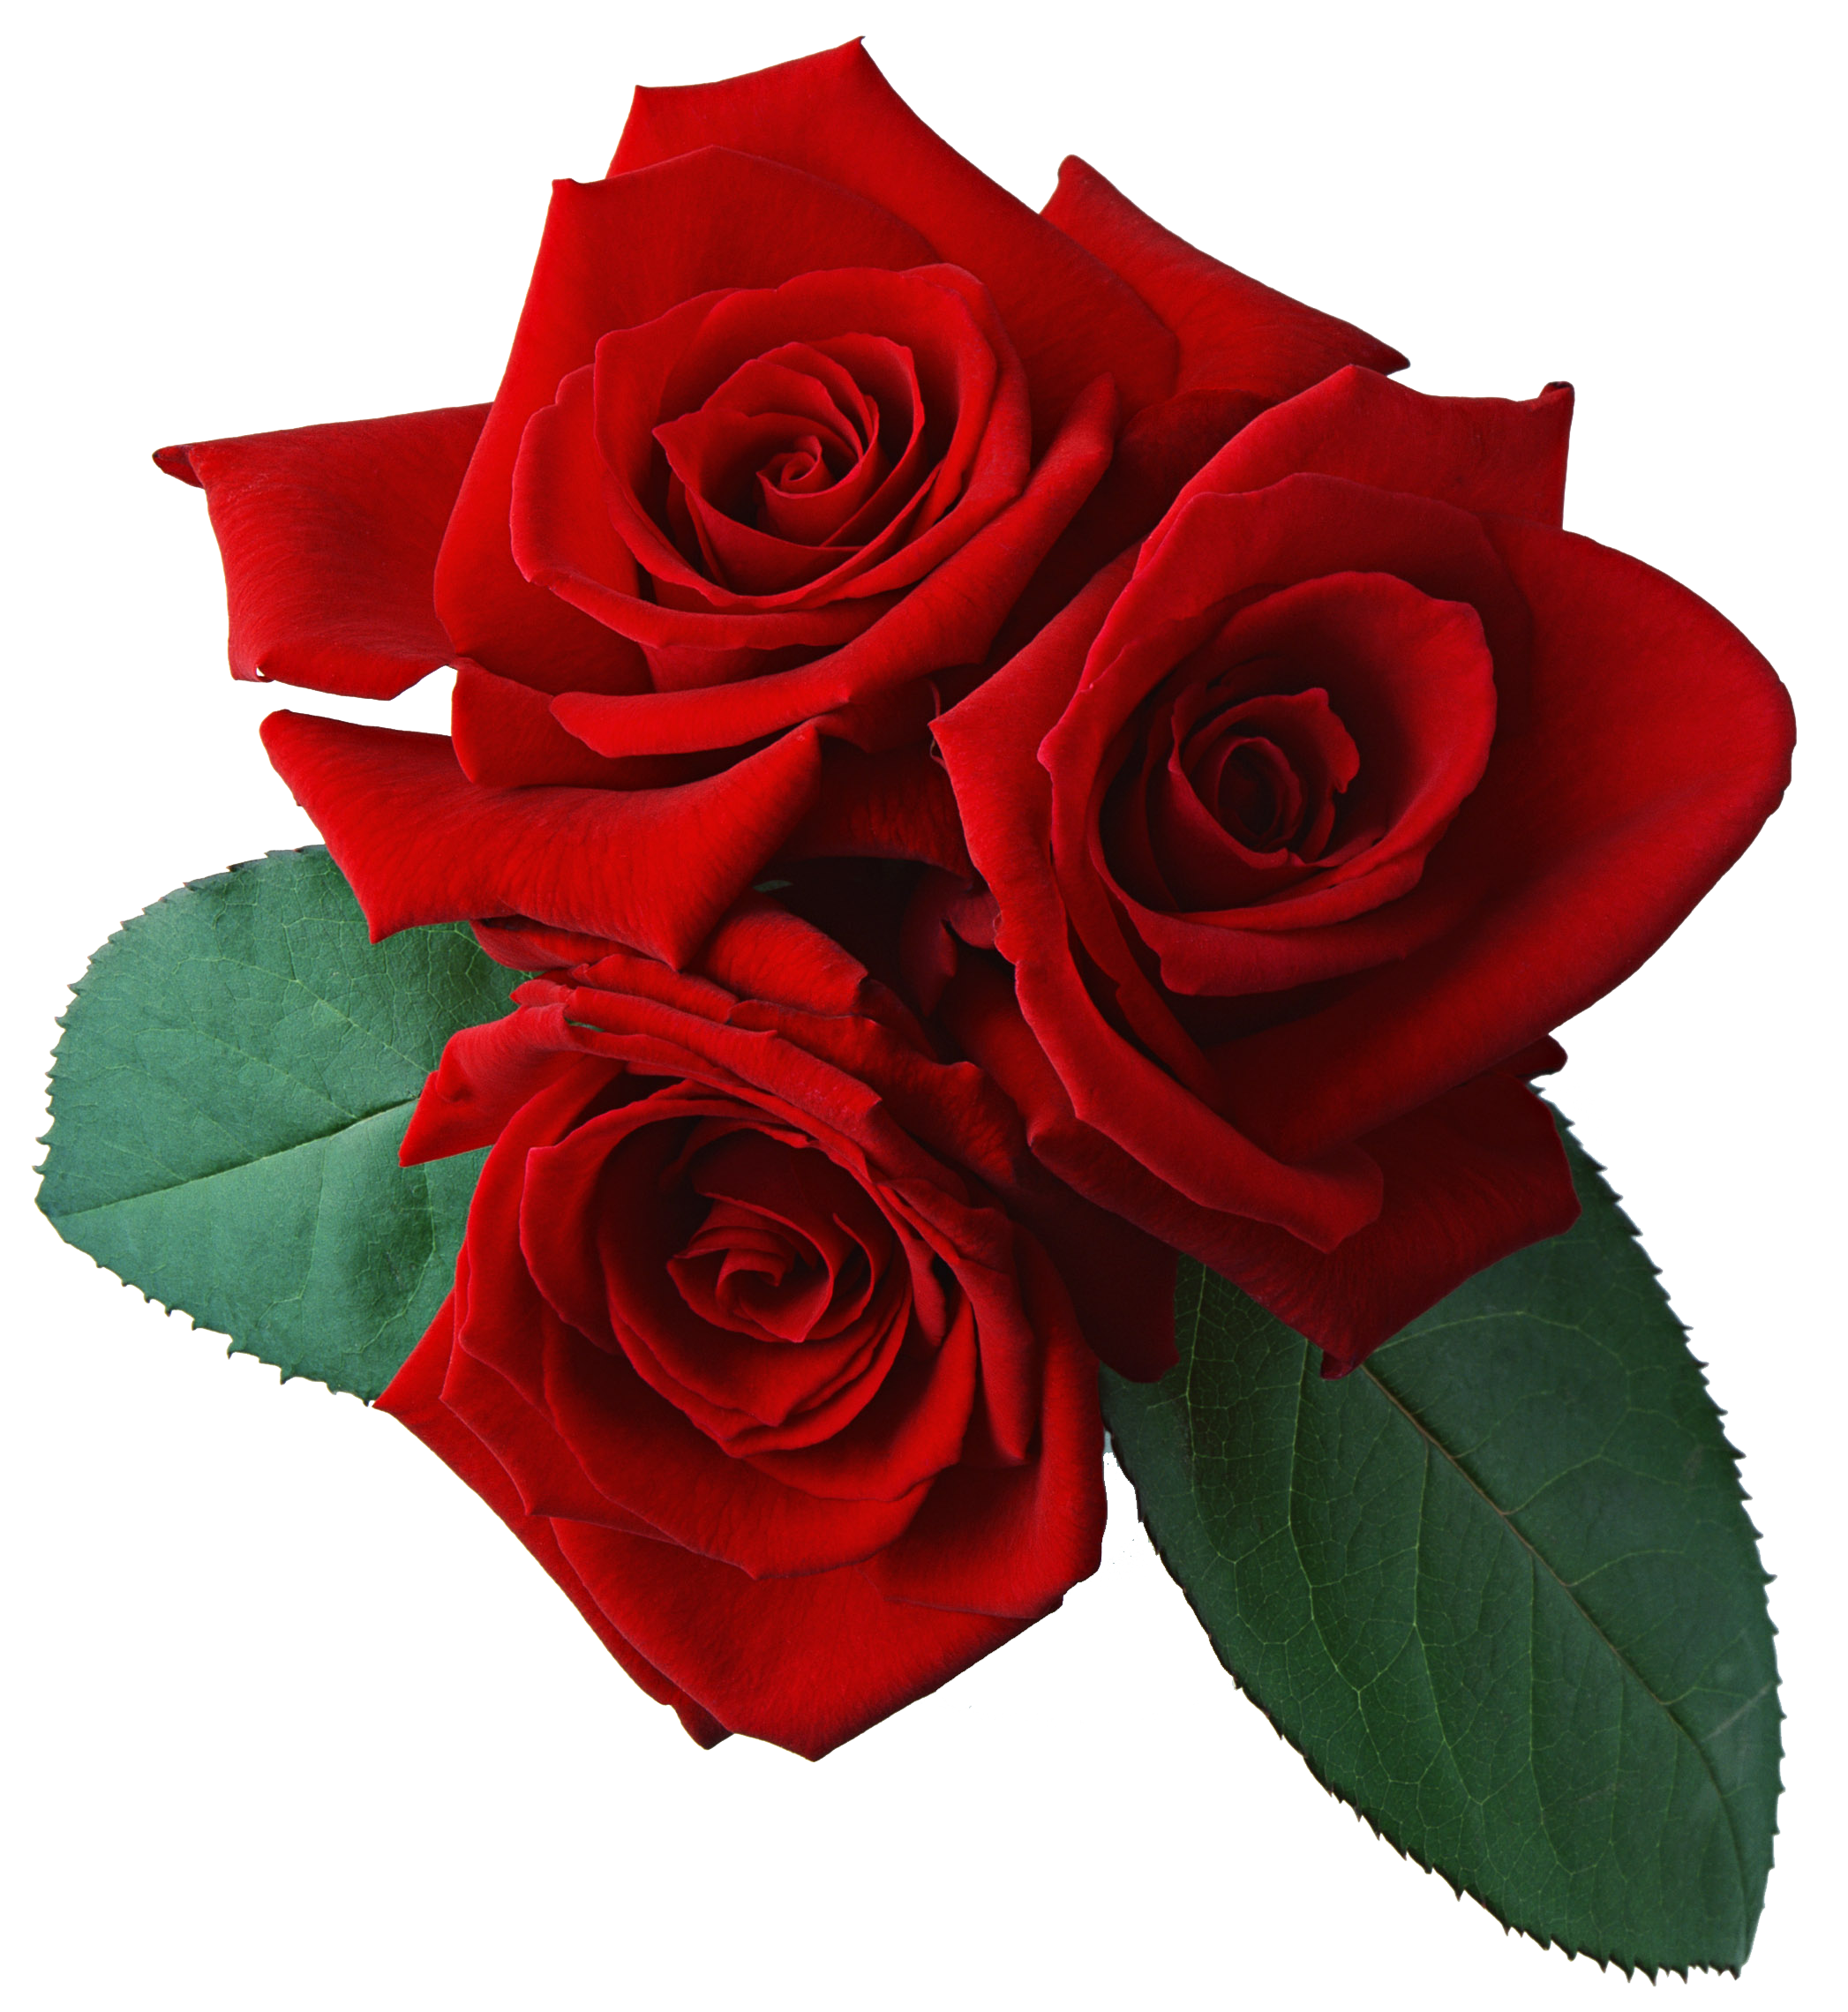 Red roses png. Flowers images download picture